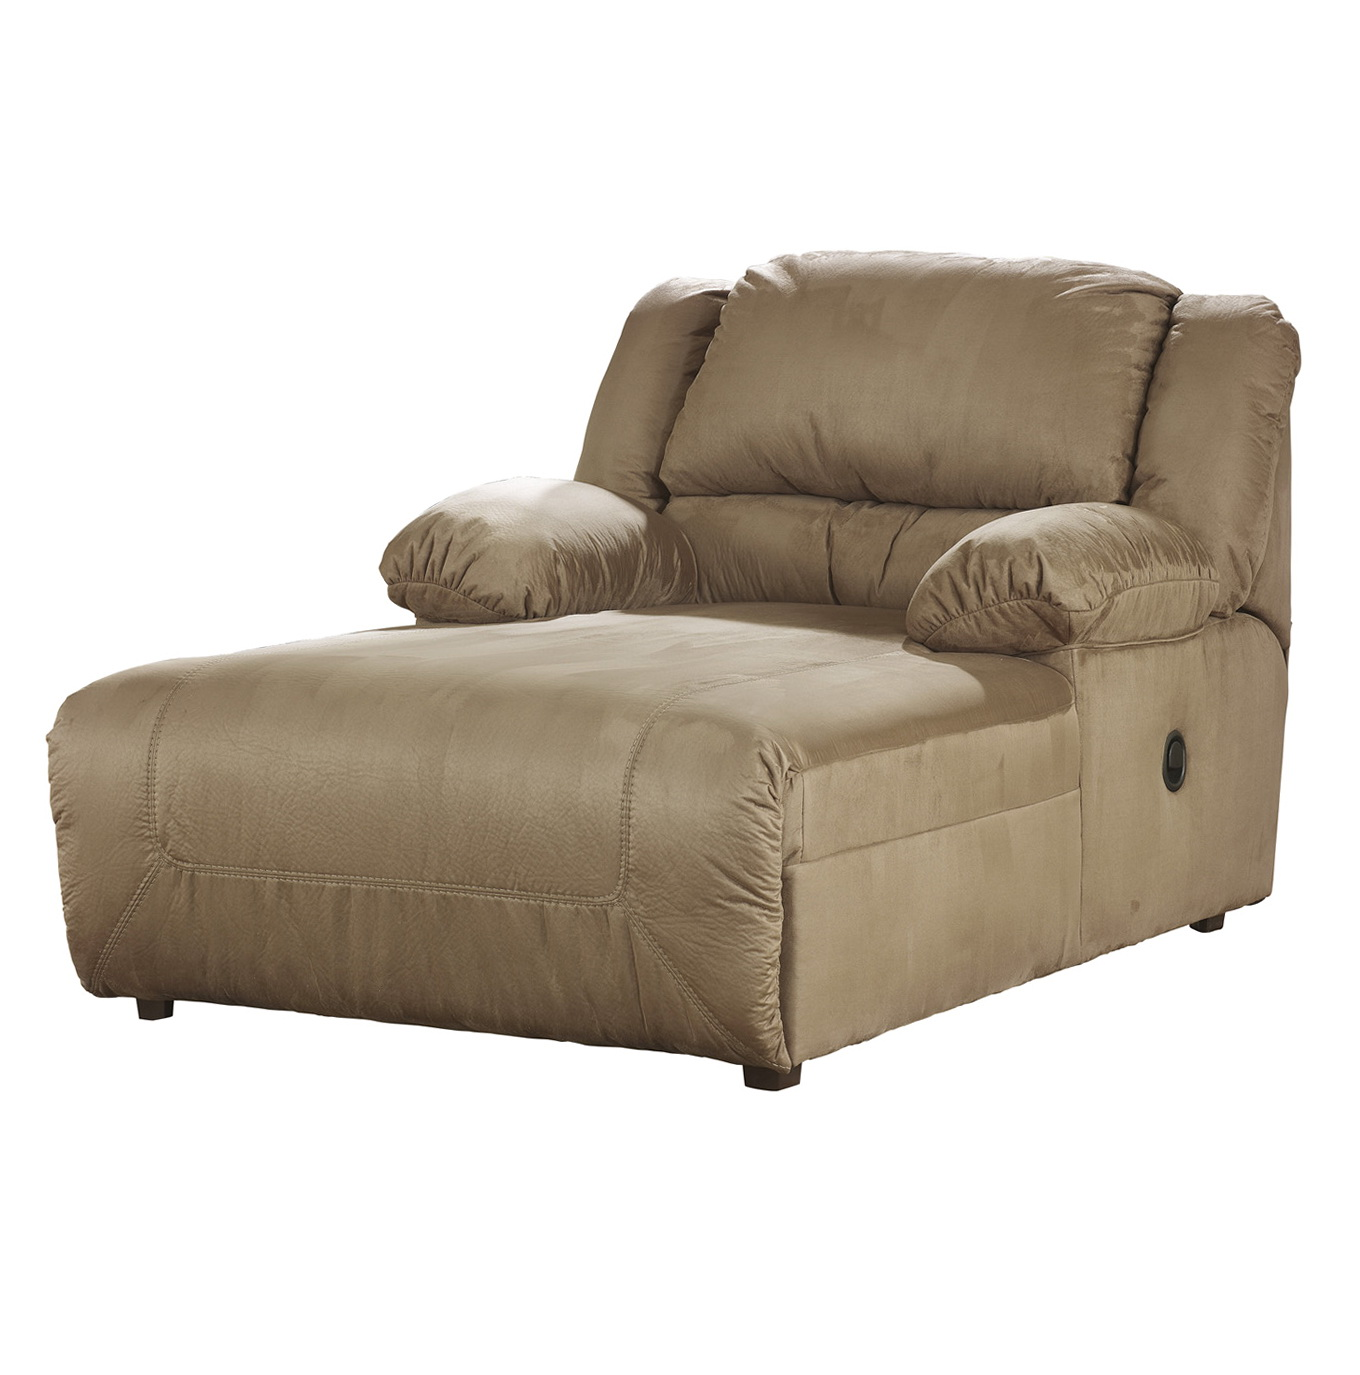 Ashley furniture chaise lounge couch home design ideas for Ashley furniture couch with chaise